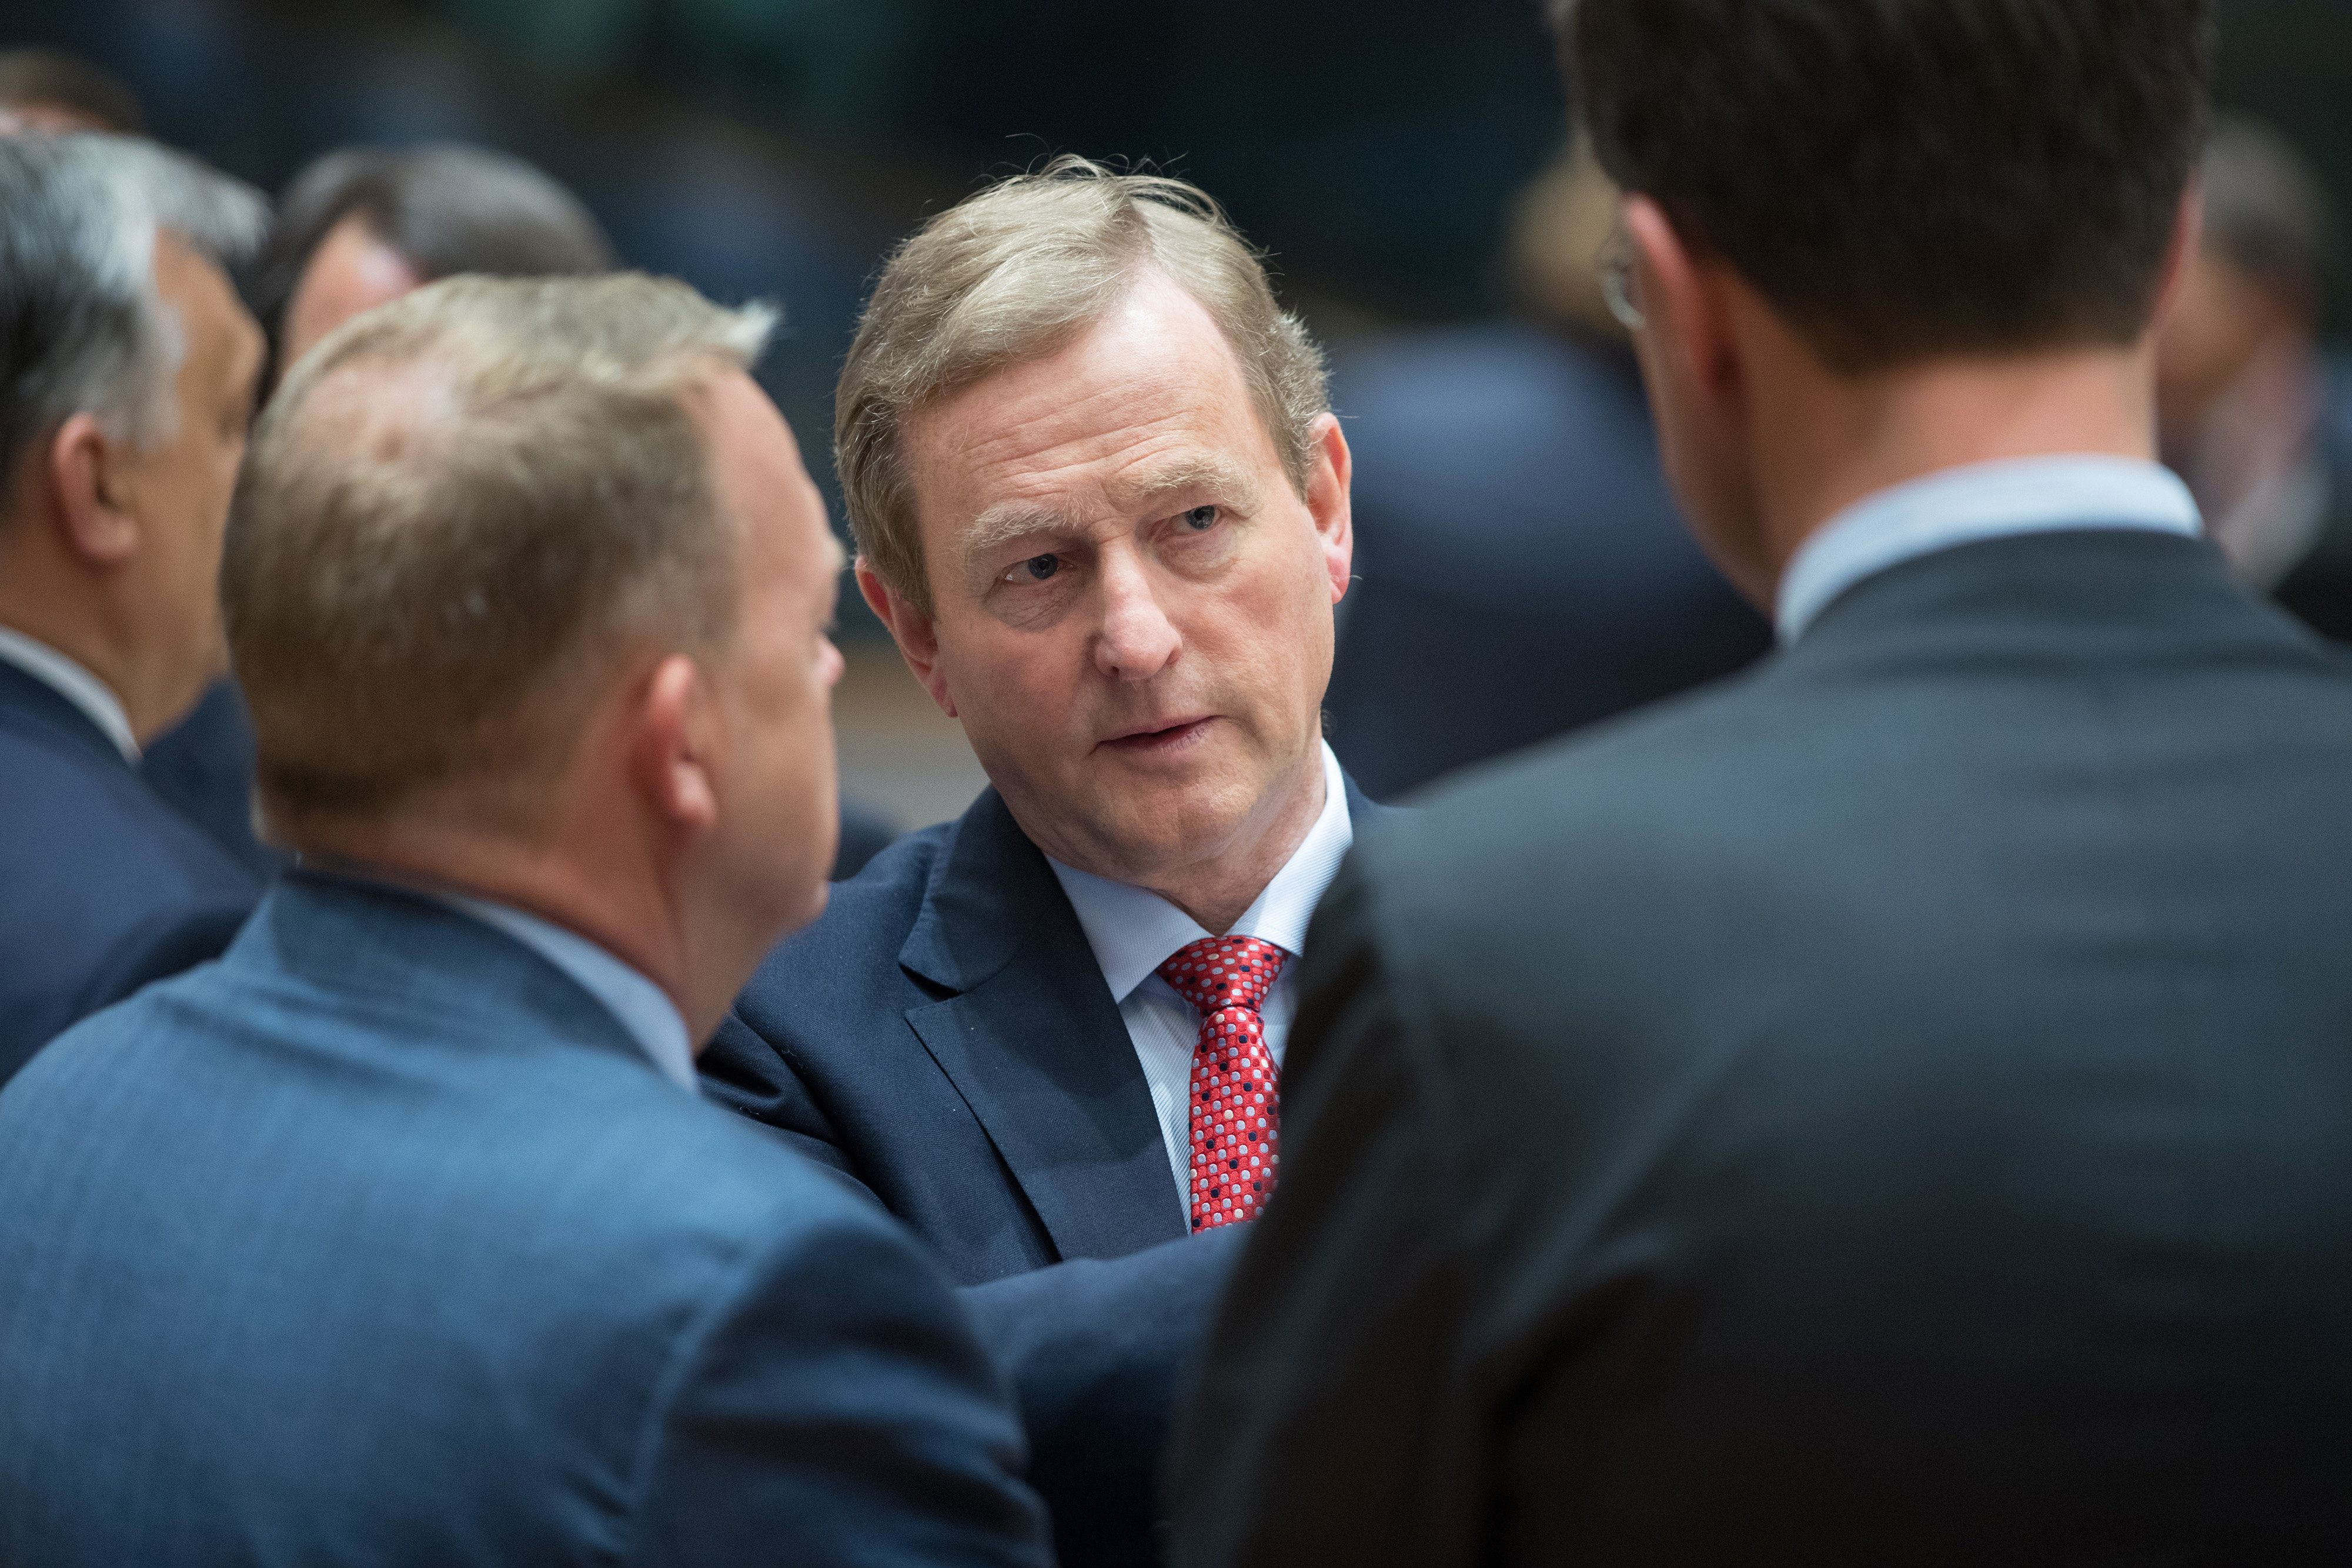 Enda Kenny, Ireland's prime minister, center, talks with Lars Lokke Rasmussen, Denmark's prime minister, left, and Mark Rutte, Dutch prime minister, right, prior to a round table meeting during a European Union (EU) leaders emergency Brexit summit at the Europa building in Brussels, Belgium, on Saturday, April 29, 2017. European Union leaders headed into their first Brexit summit are convinced that when it comes to the pending talks with the U.K. theyre already winning. Photographer: Jasper Juinen/Bloomberg via Getty Images